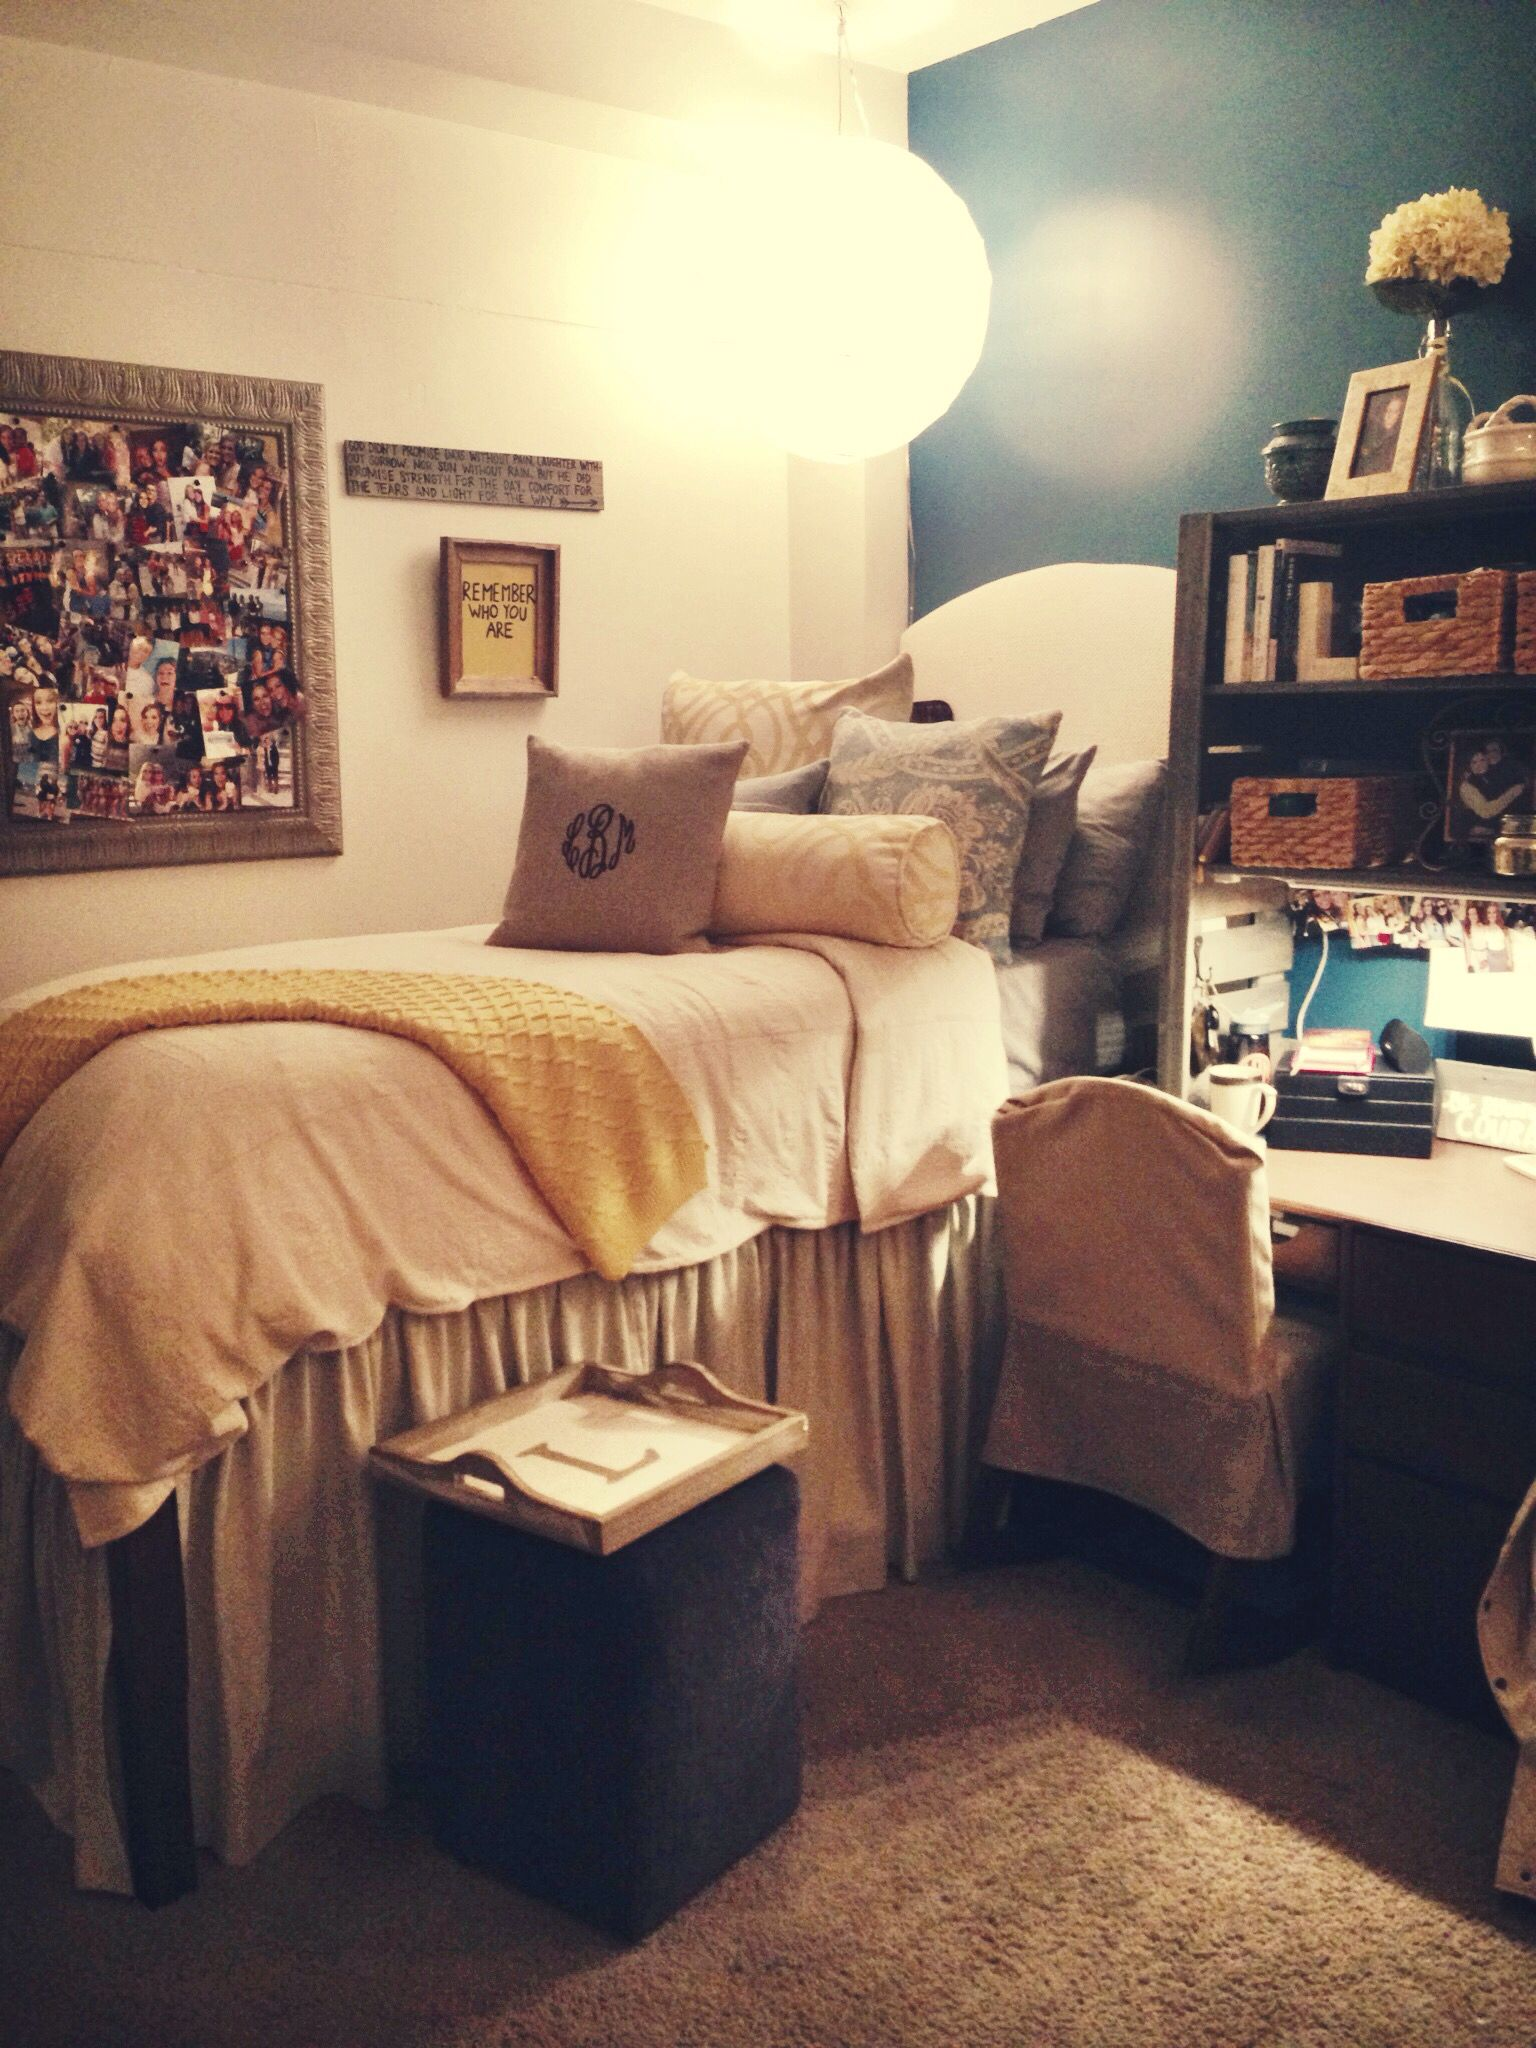 Auburn dorm room c o l l e g e in 2019 cool dorm rooms - Dorm room bedding ideas ...